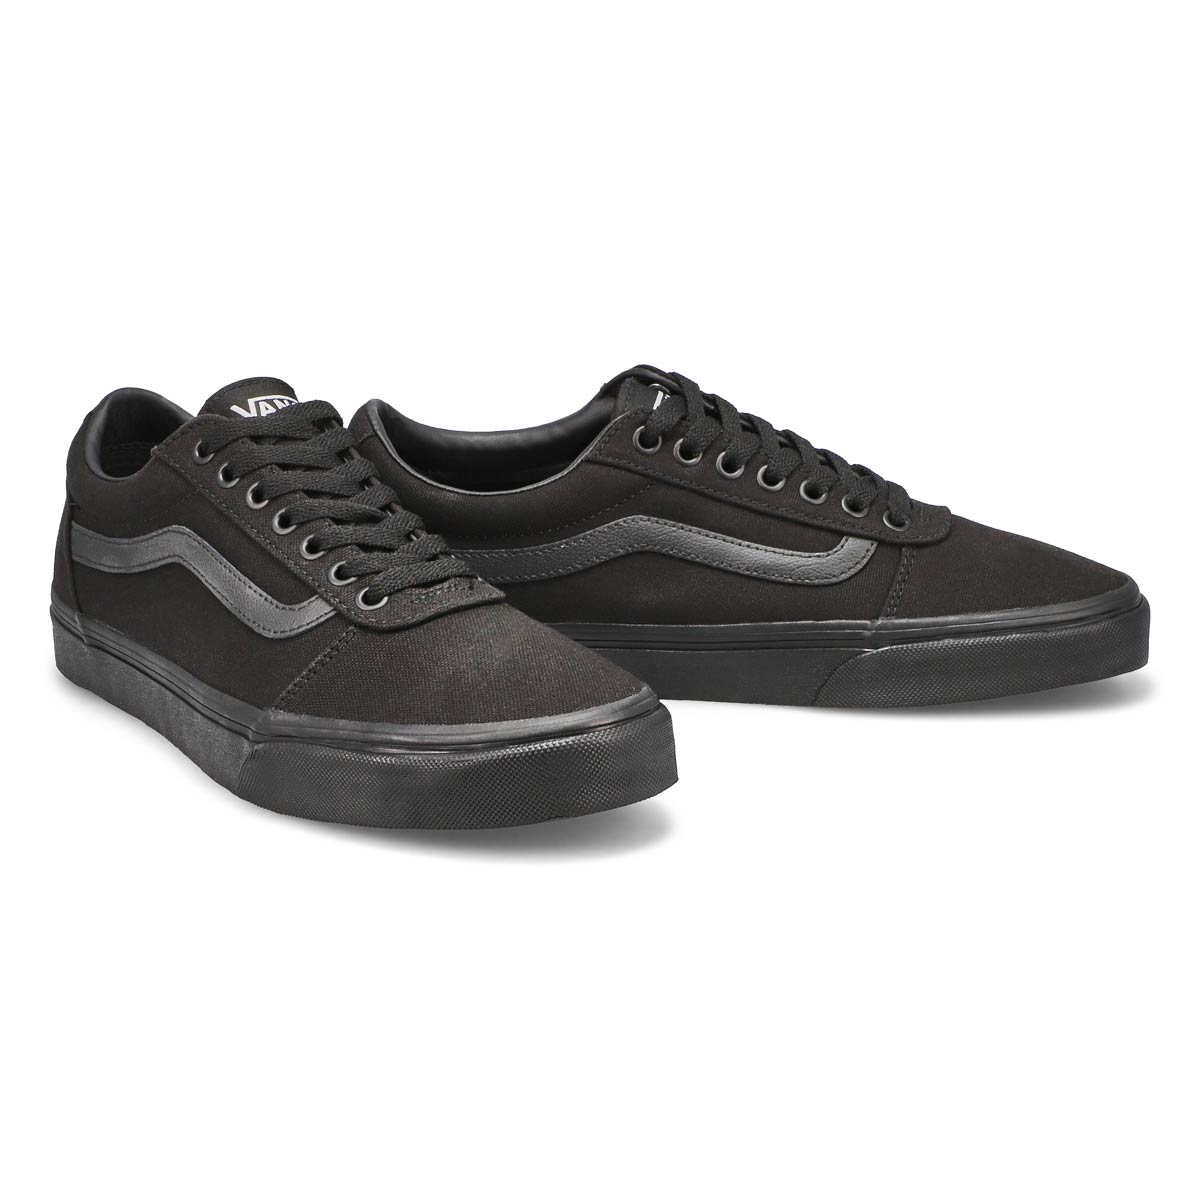 Men's Ward Sneaker - Black/Black